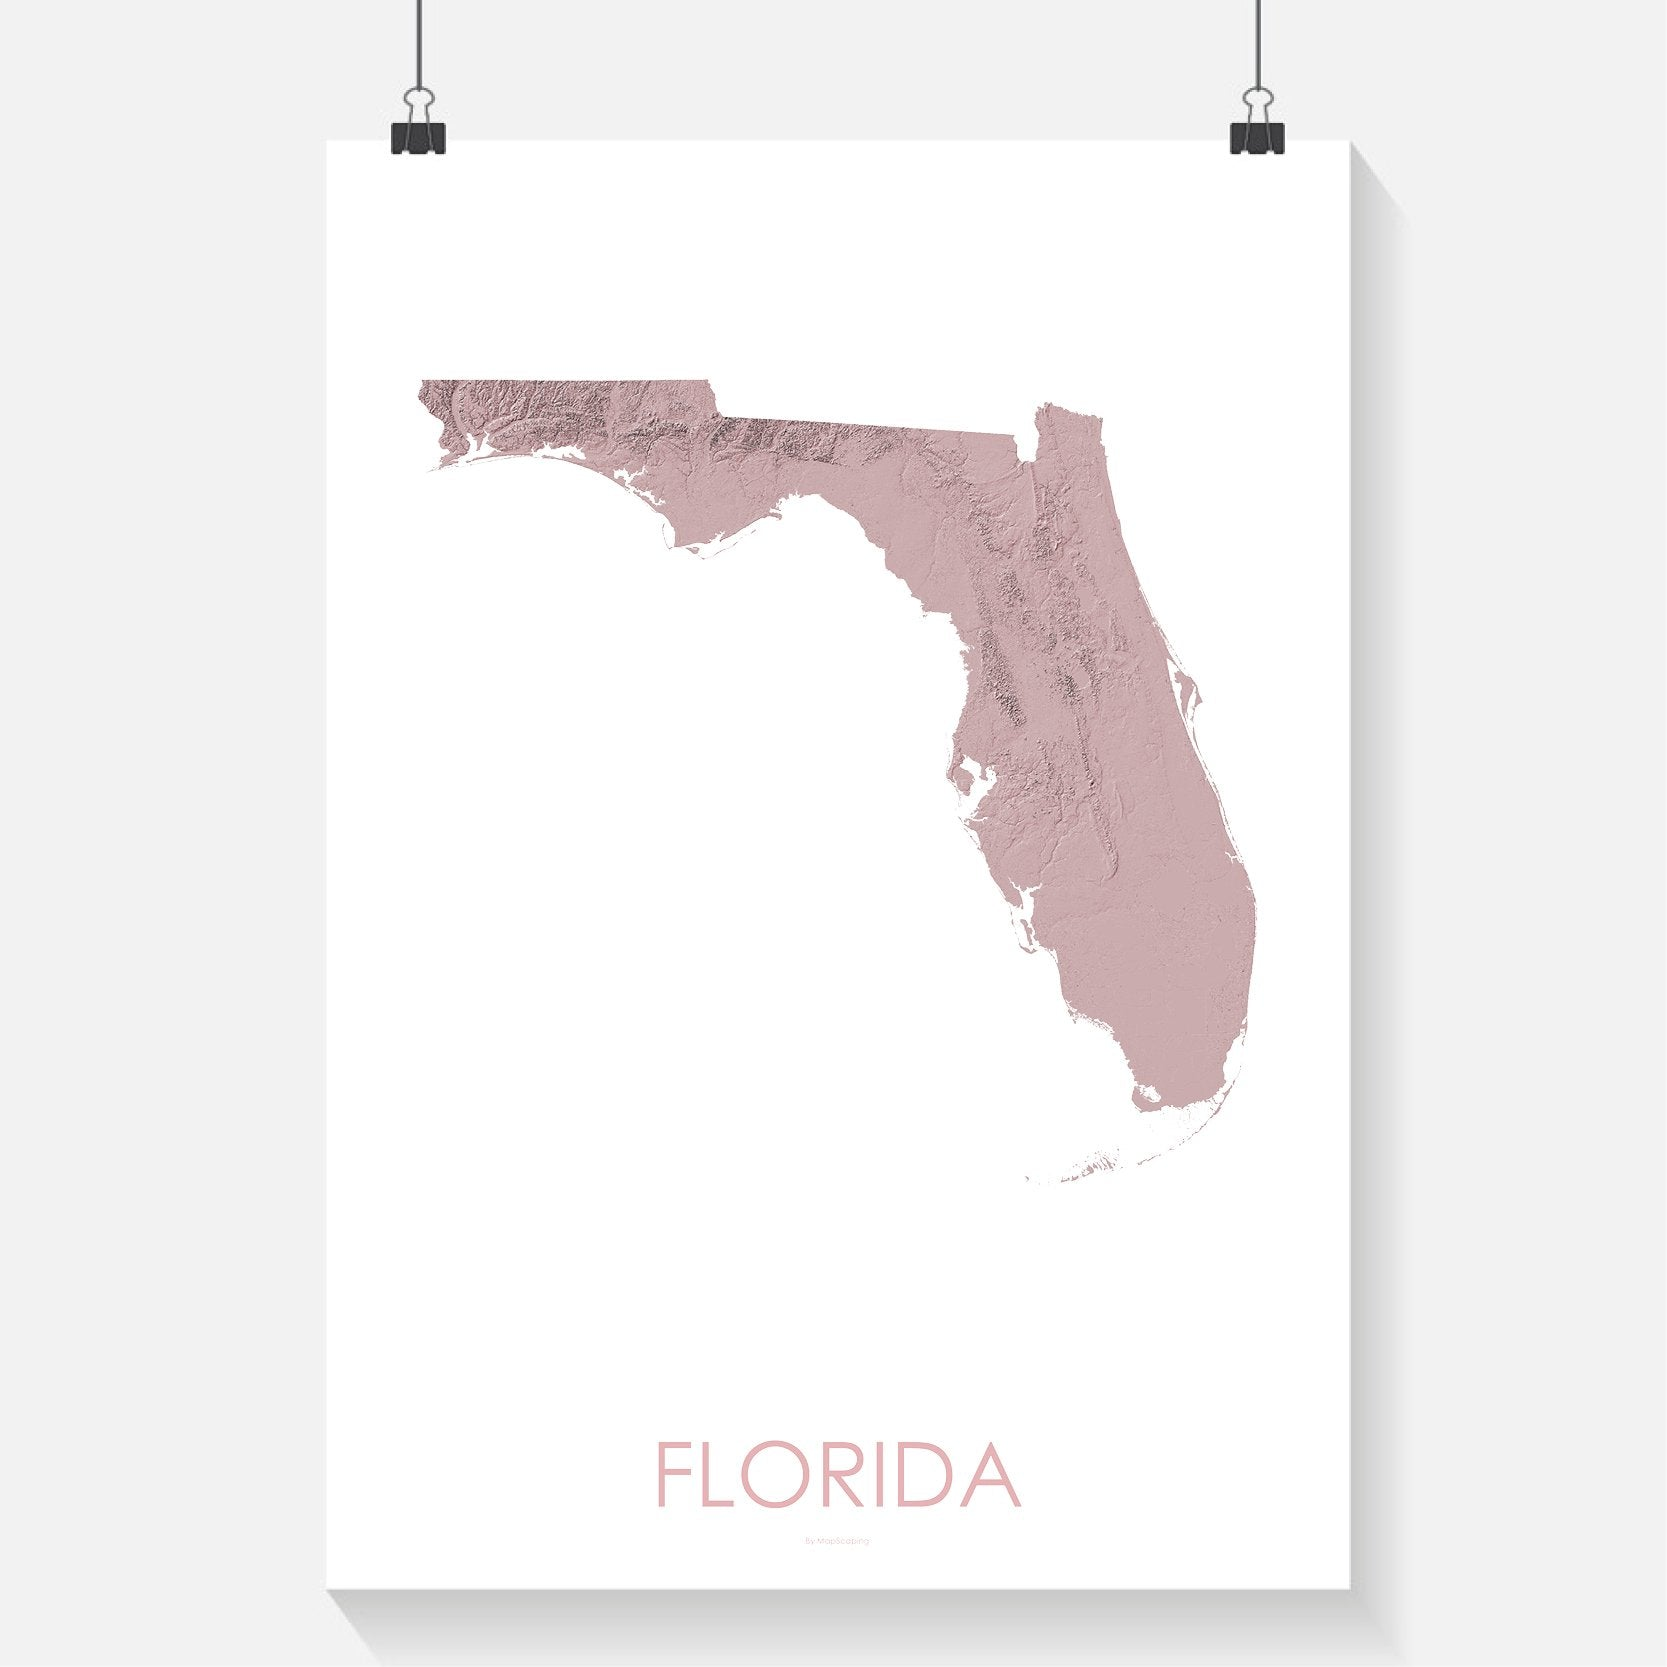 Florida topographic wall art map - MapScaping.com